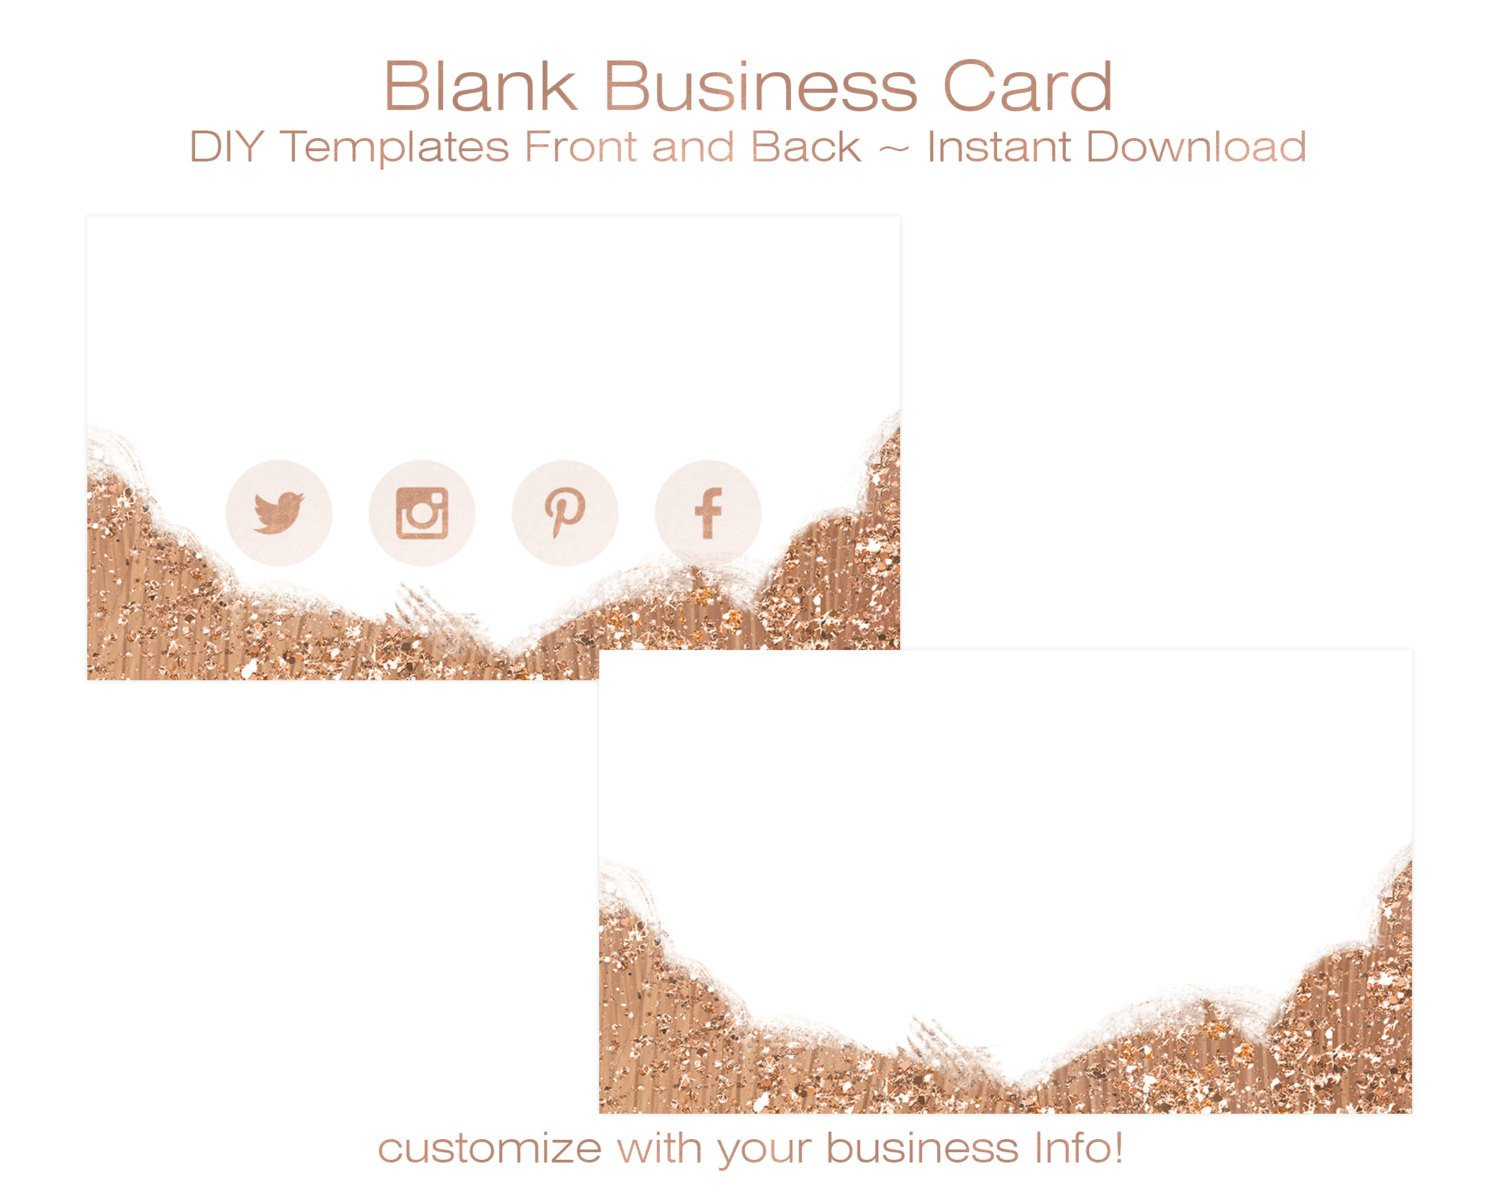 Business Card Blank Template Business Card Template Diy Blank Business Card Standard Size